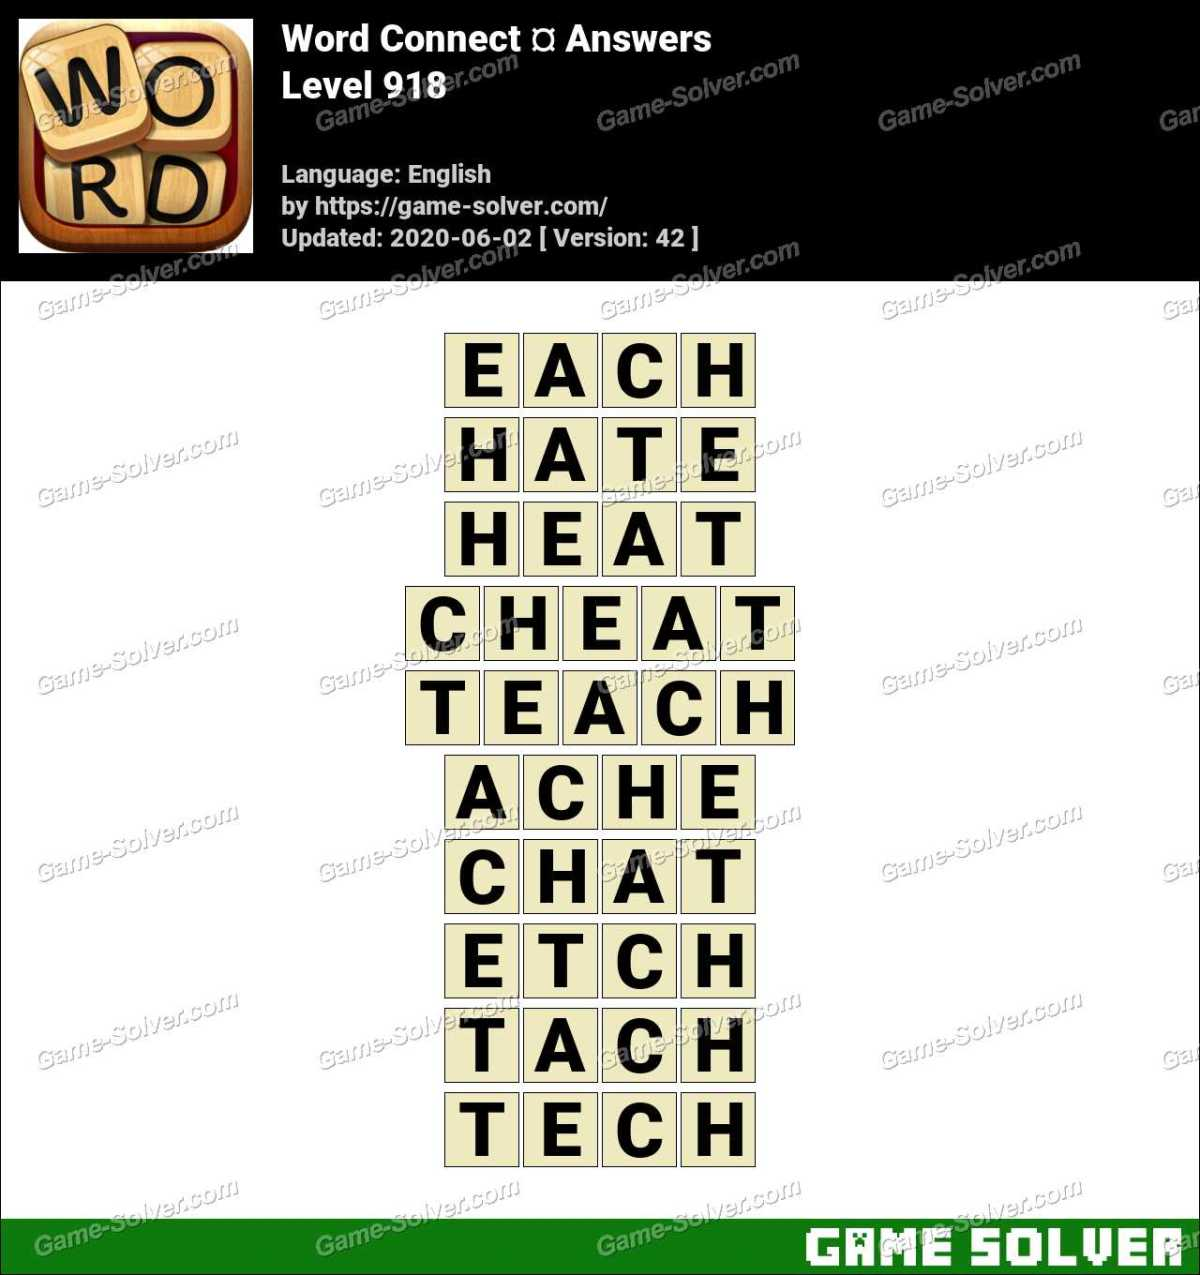 Word Connect Level 918 Answers